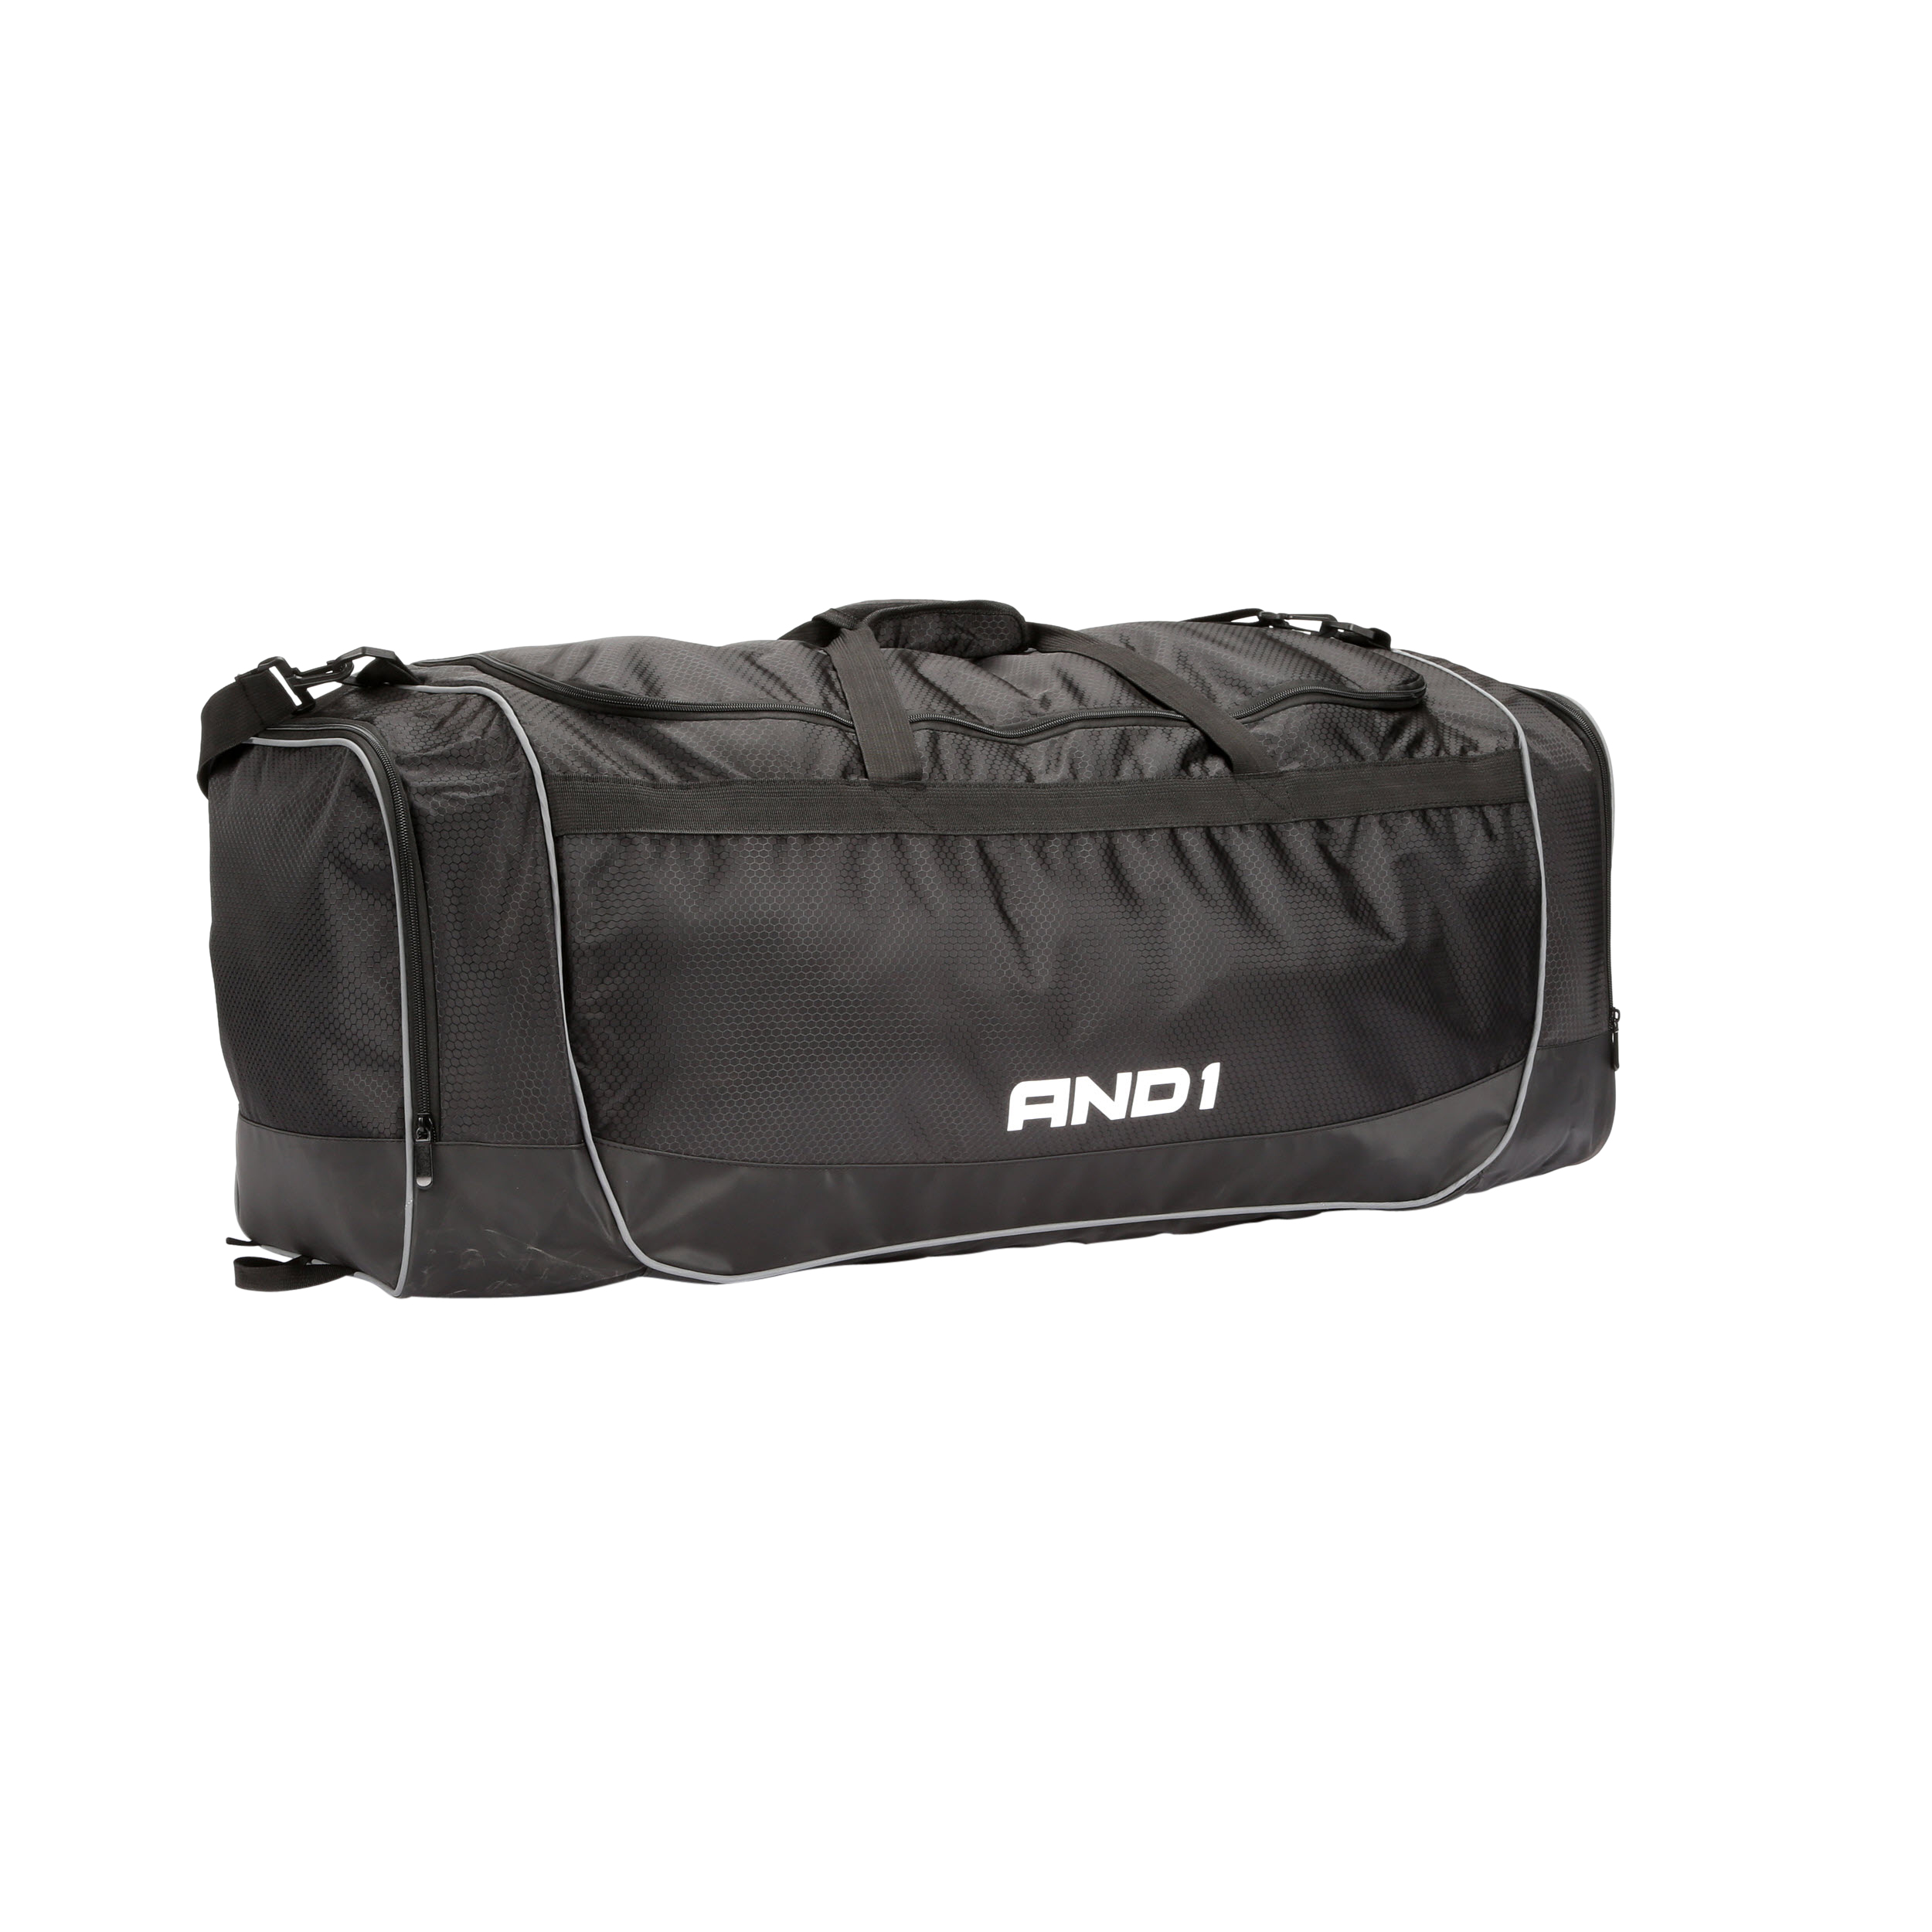 AND1 Equipment Duffle by